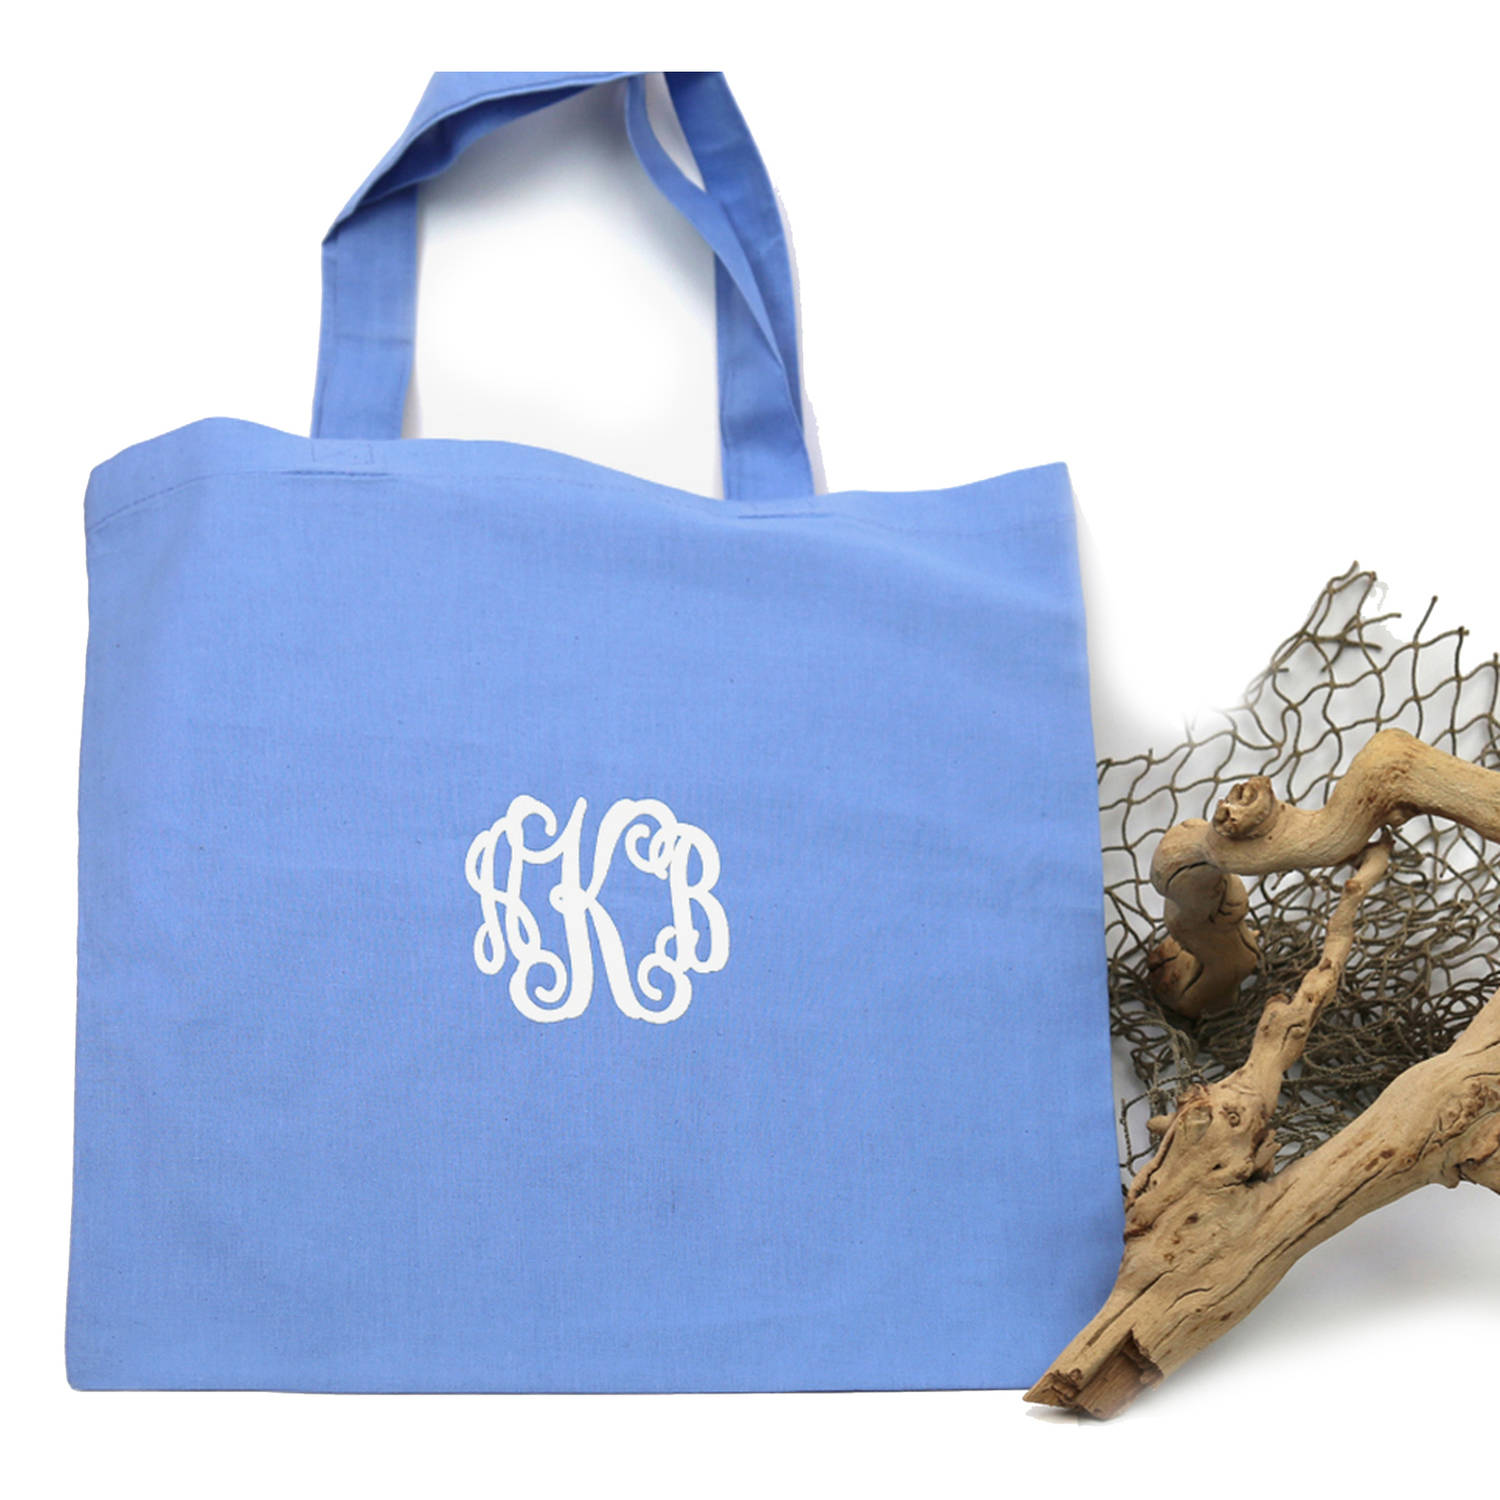 """Personalized Monogram Cotton Tote Bag, Sizes 11"""" x 14"""" and 14.5"""" x 18"""""""